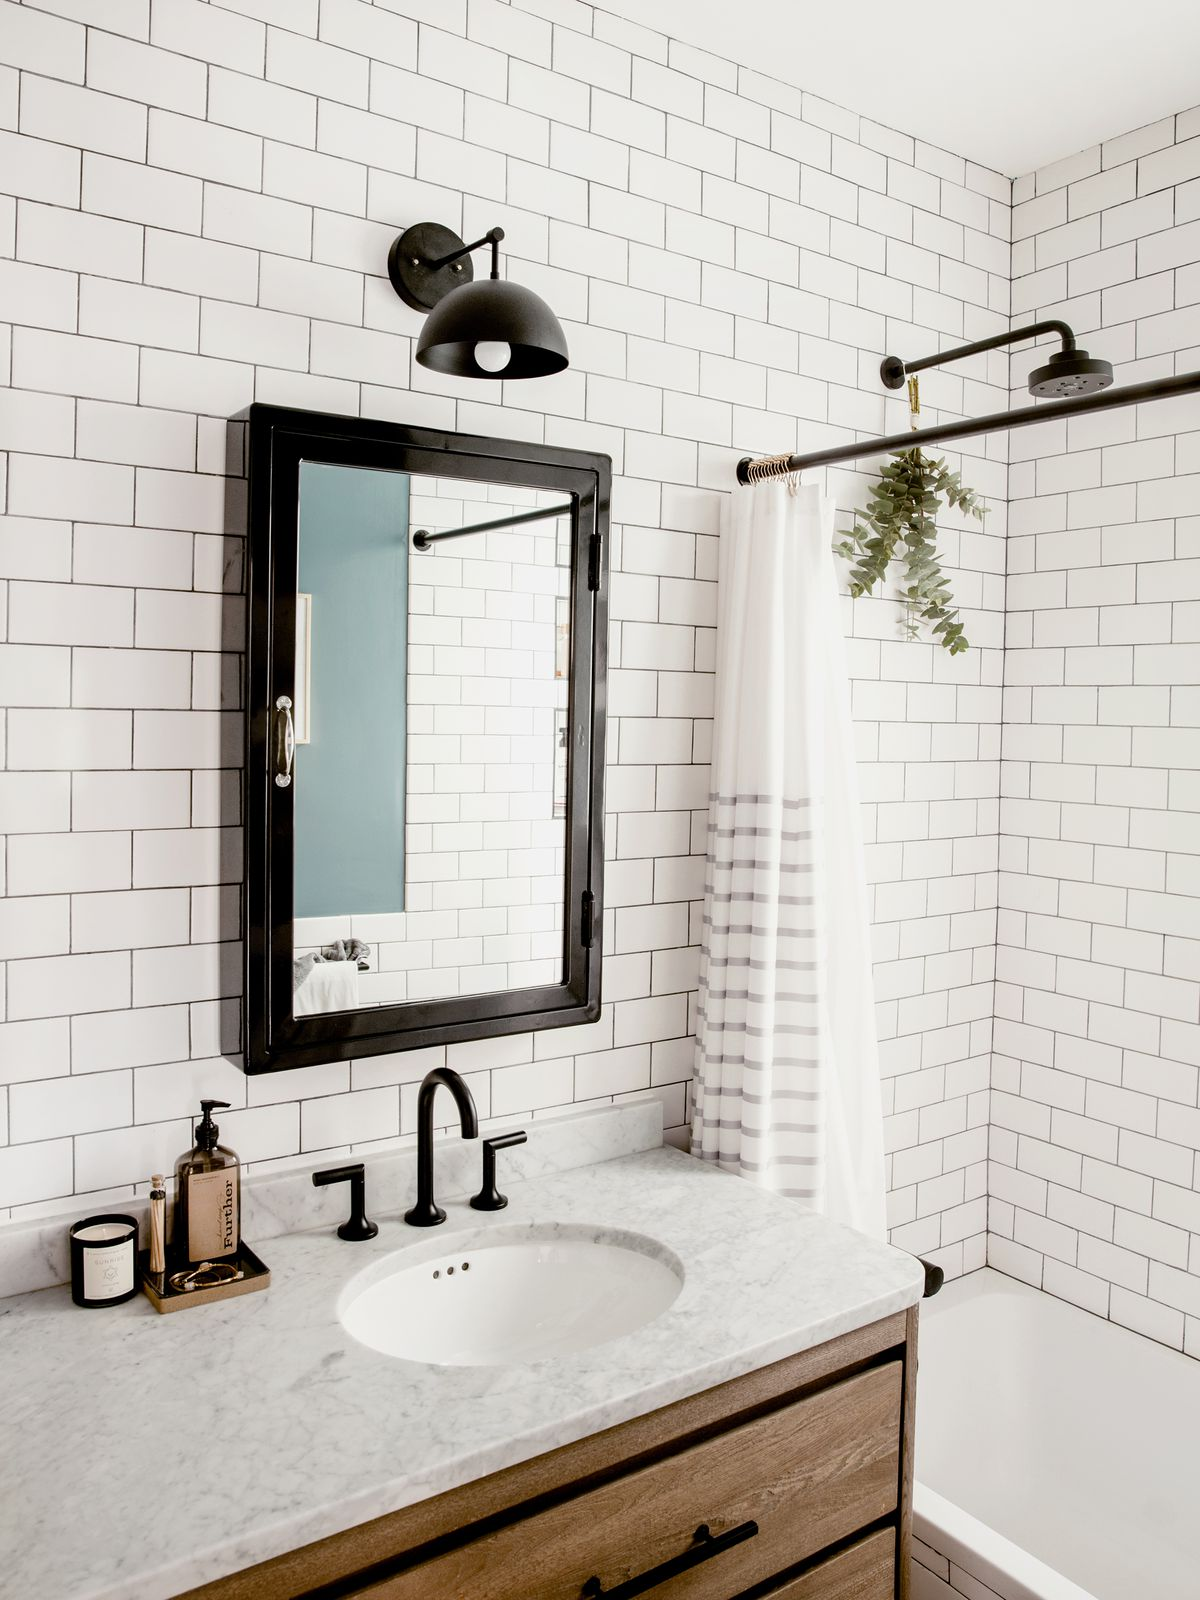 A bathroom with a double sink, built in tub by the window, and black-rimmed mirror.